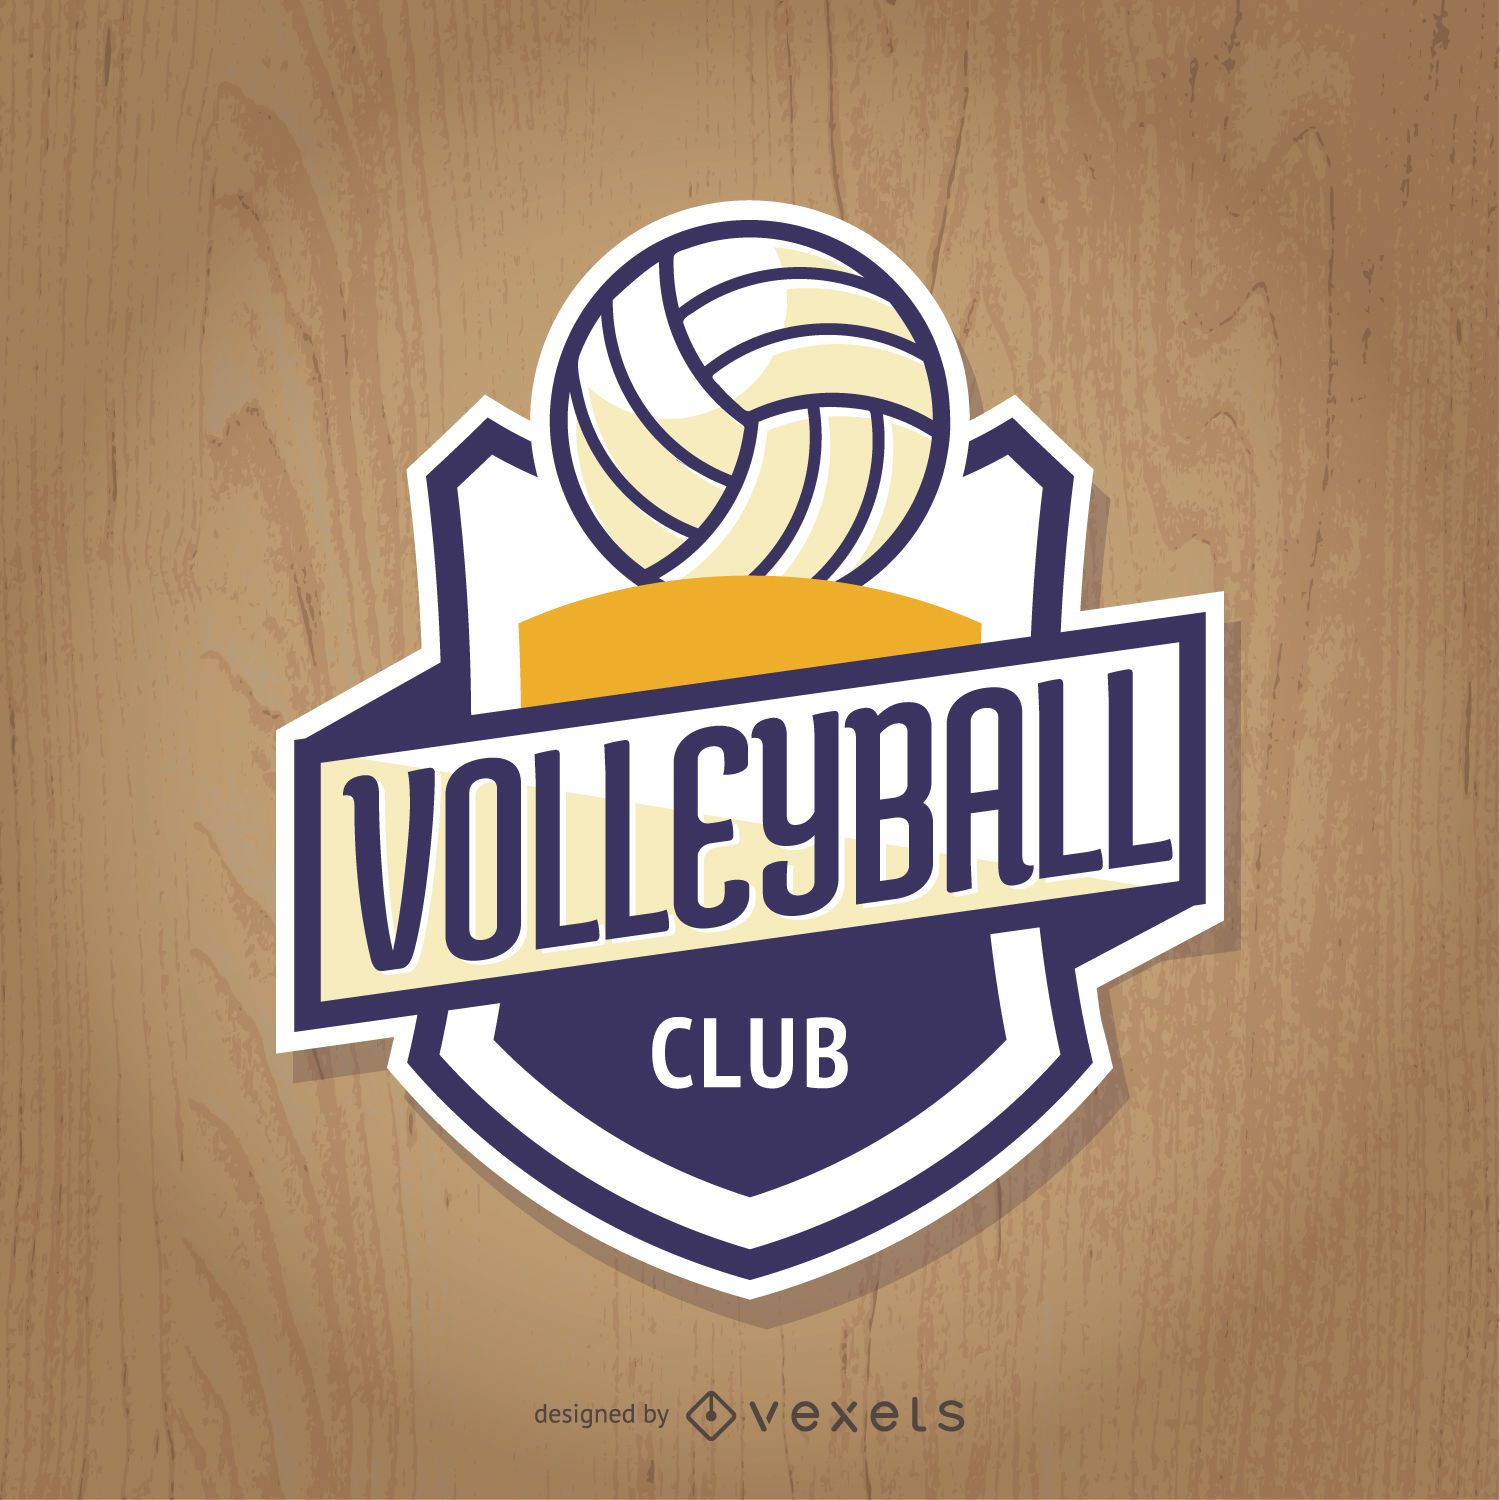 Volleyball Club Insignien